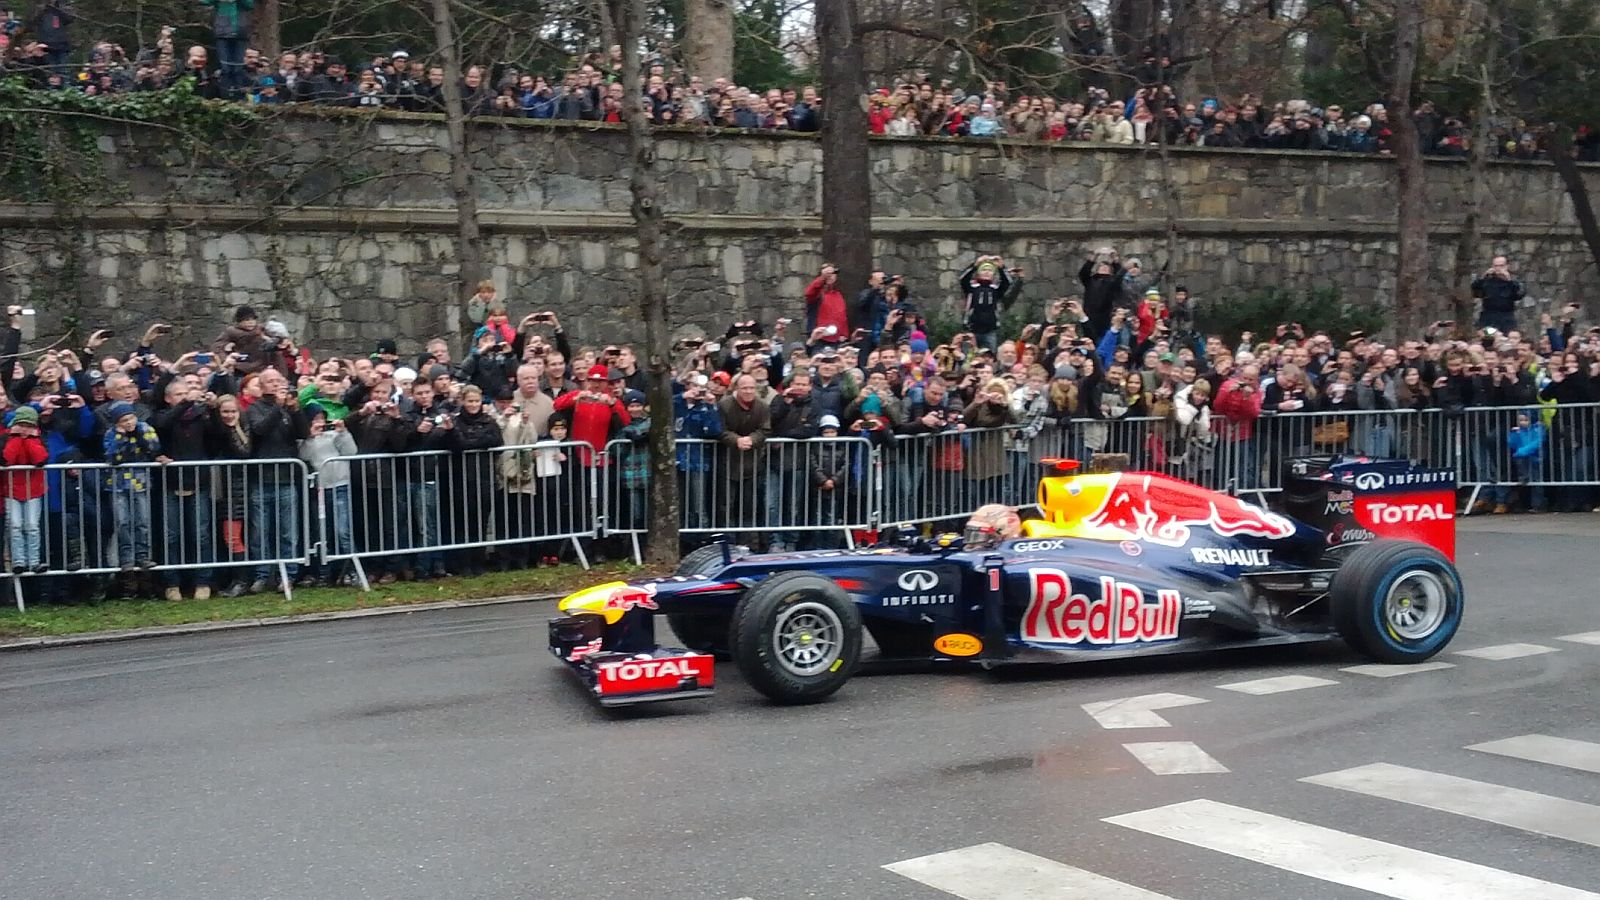 vettel in graz red bull formel 1 - Sebastian Vettel: Red Bull Formel 1 Showrun in Graz